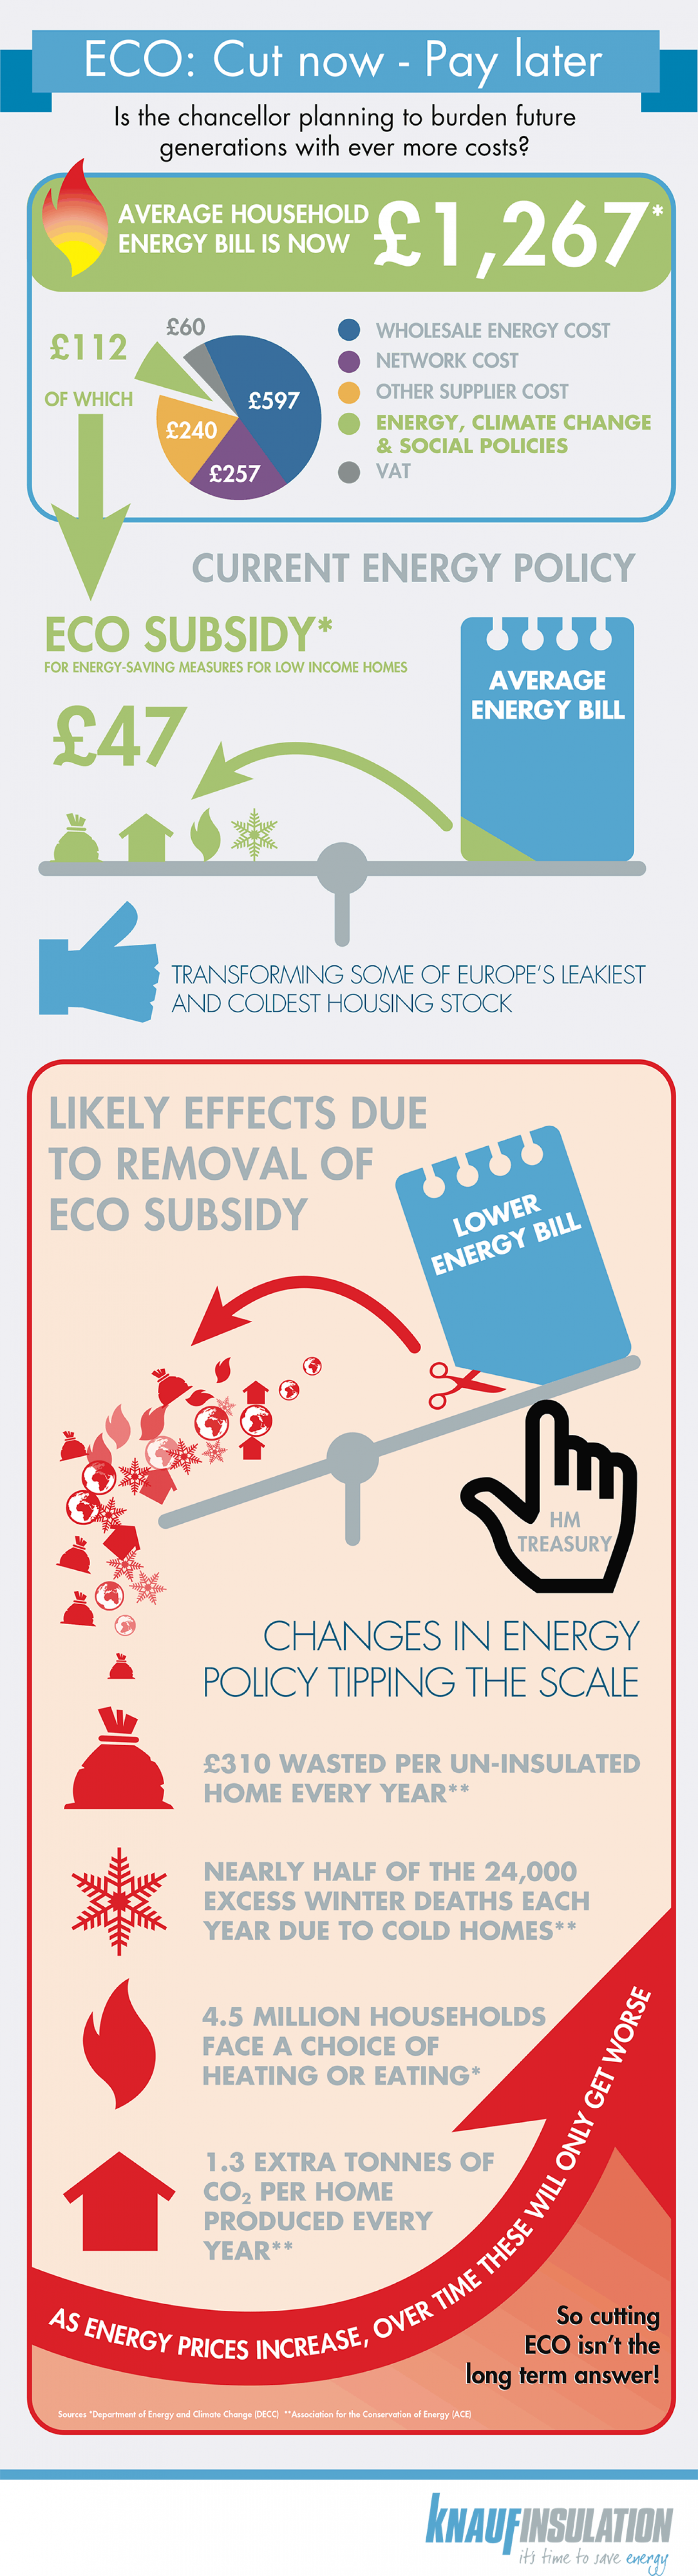 ECO: Cut now - Pay later Infographic